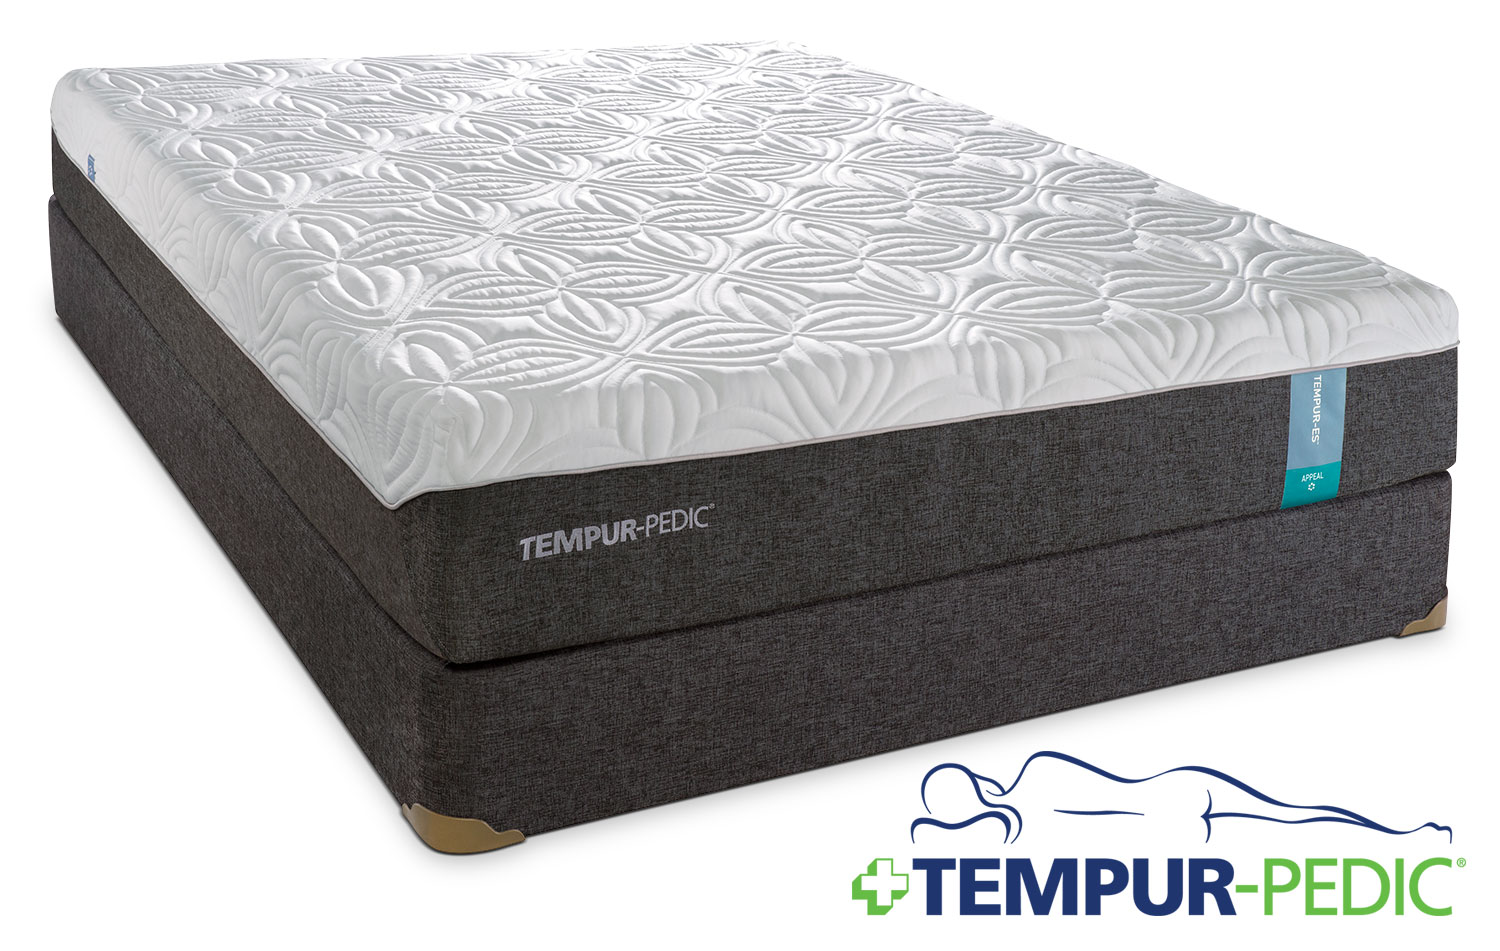 Tempur-Pedic Appeal Queen Mattress/Boxspring Set